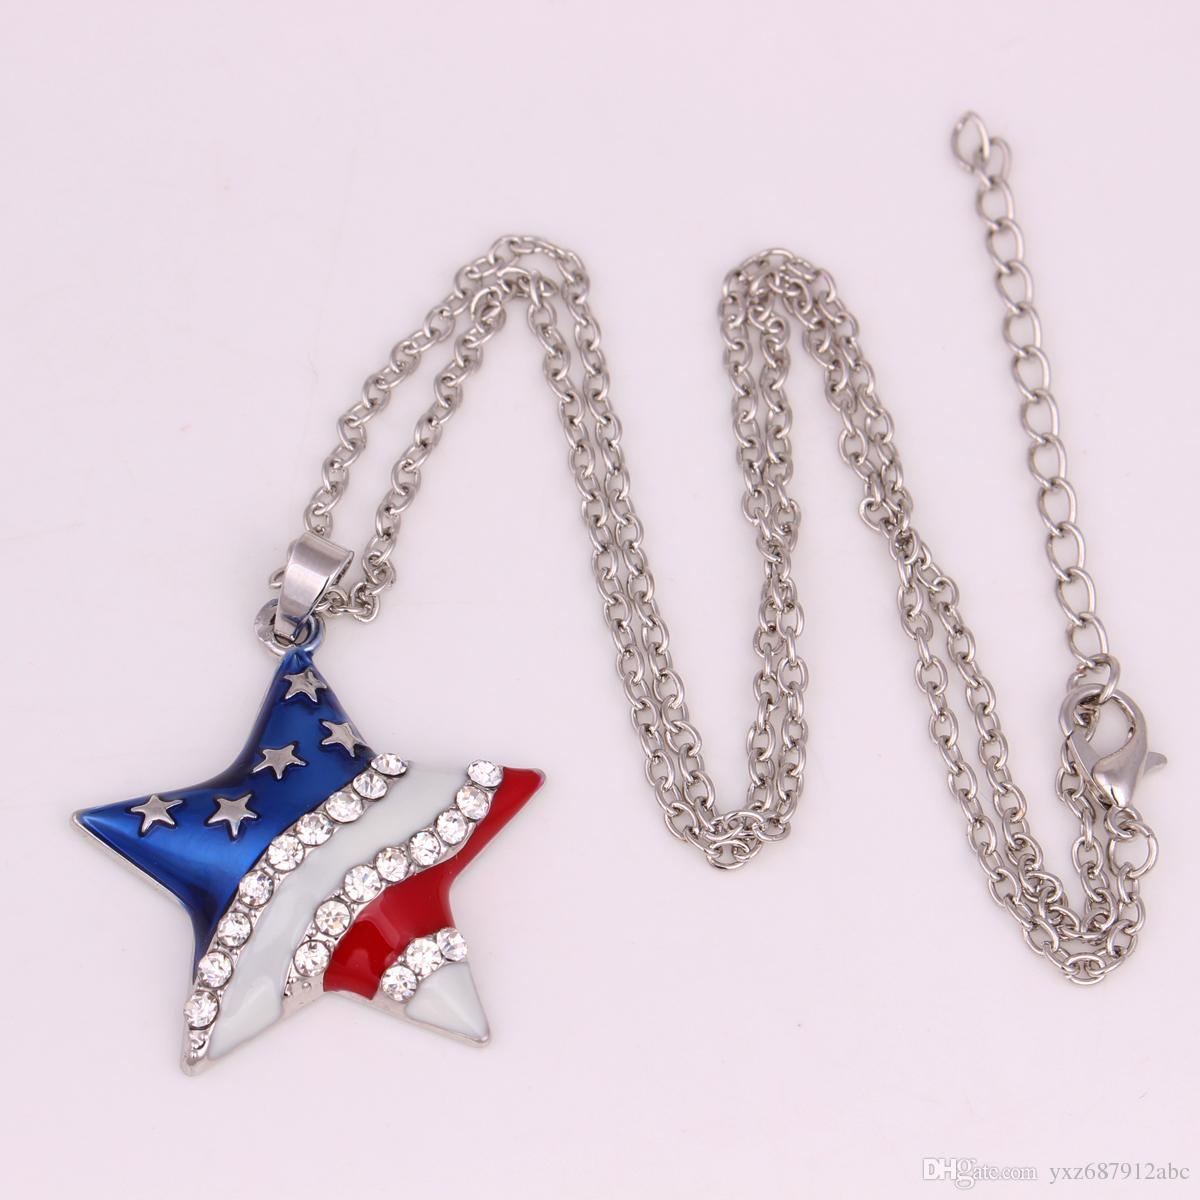 Free Shipping 50pcs A Lot Trendy Fashion Jewelry Enamel American Flag Star With Clear Crystal Stones Pendant Necklaces For Women